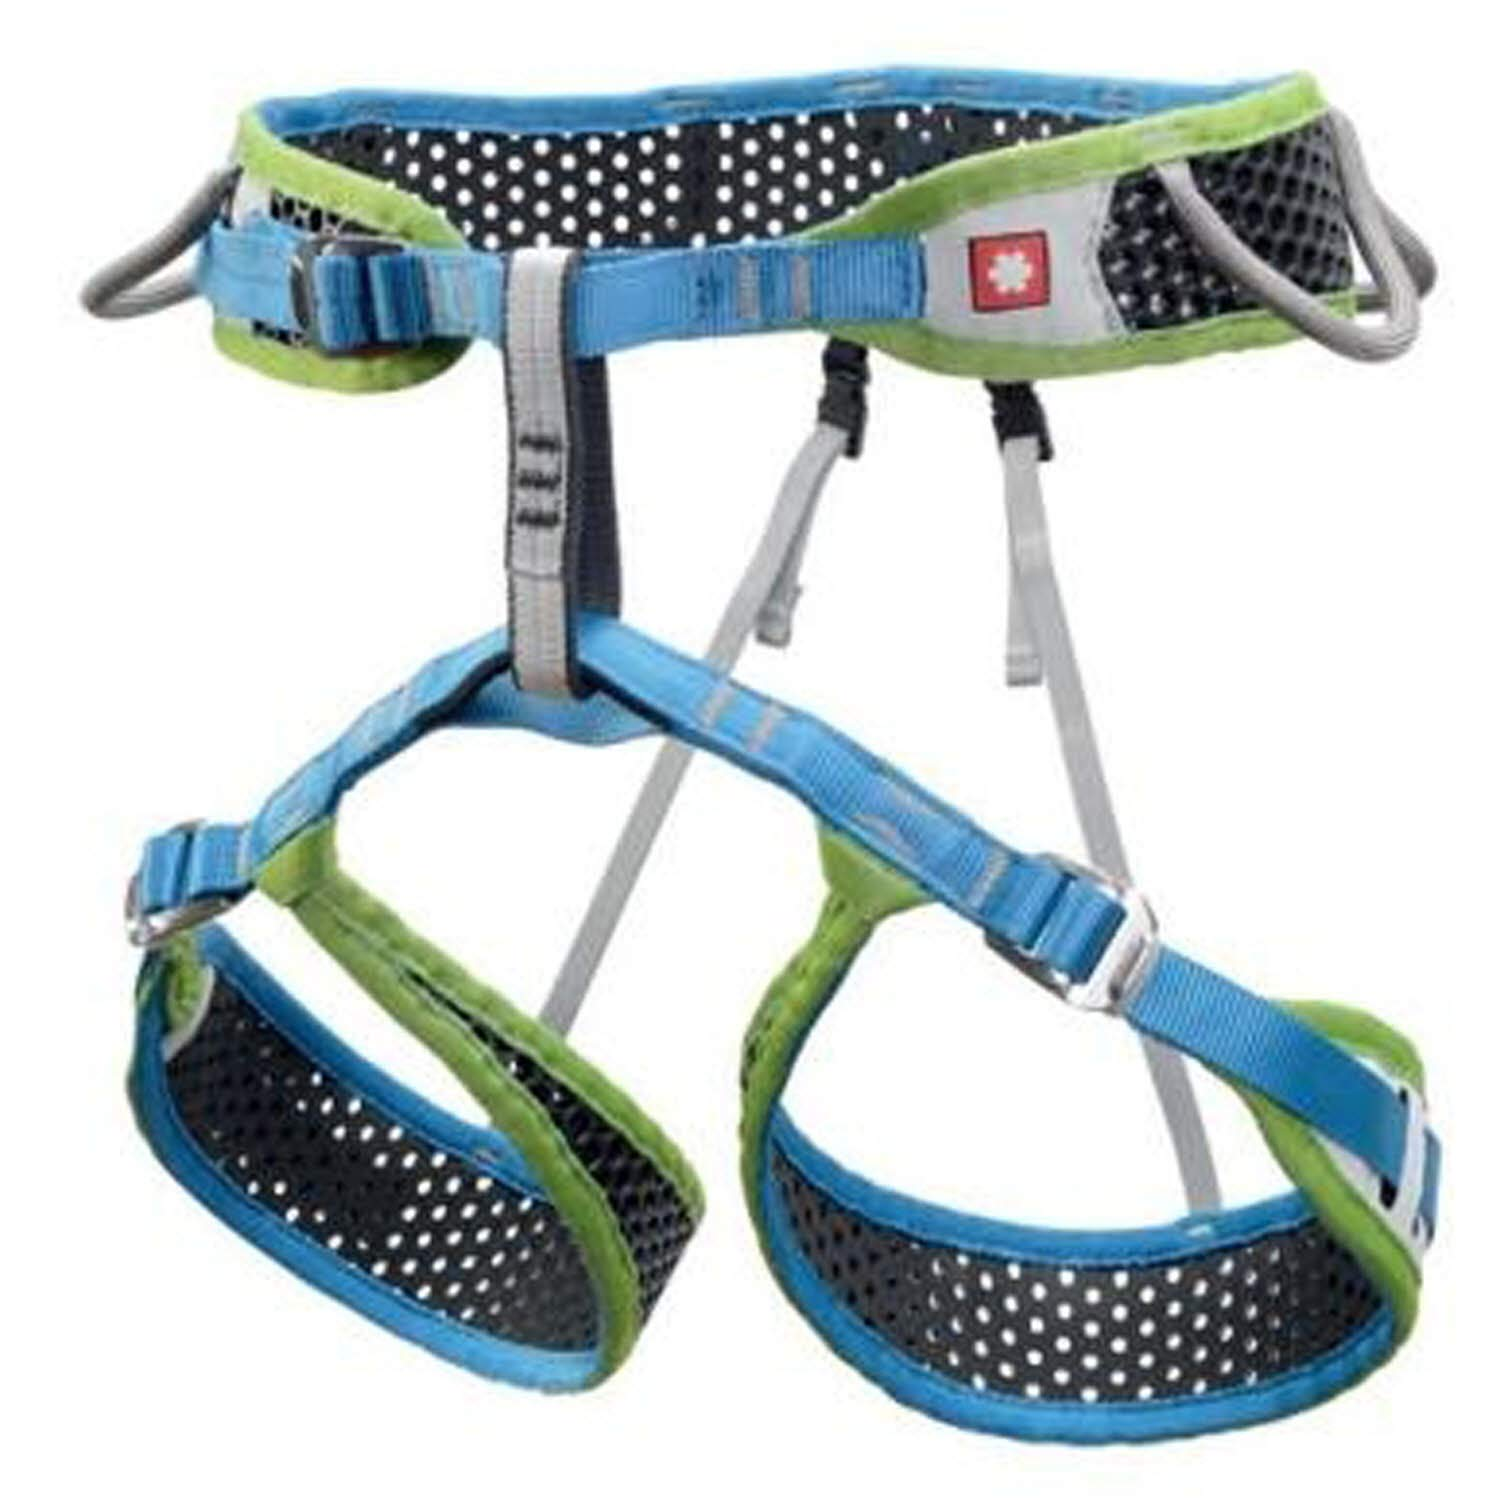 Ocun – Via Ferrata webee Pail Set: Amazon.es: Deportes y aire libre